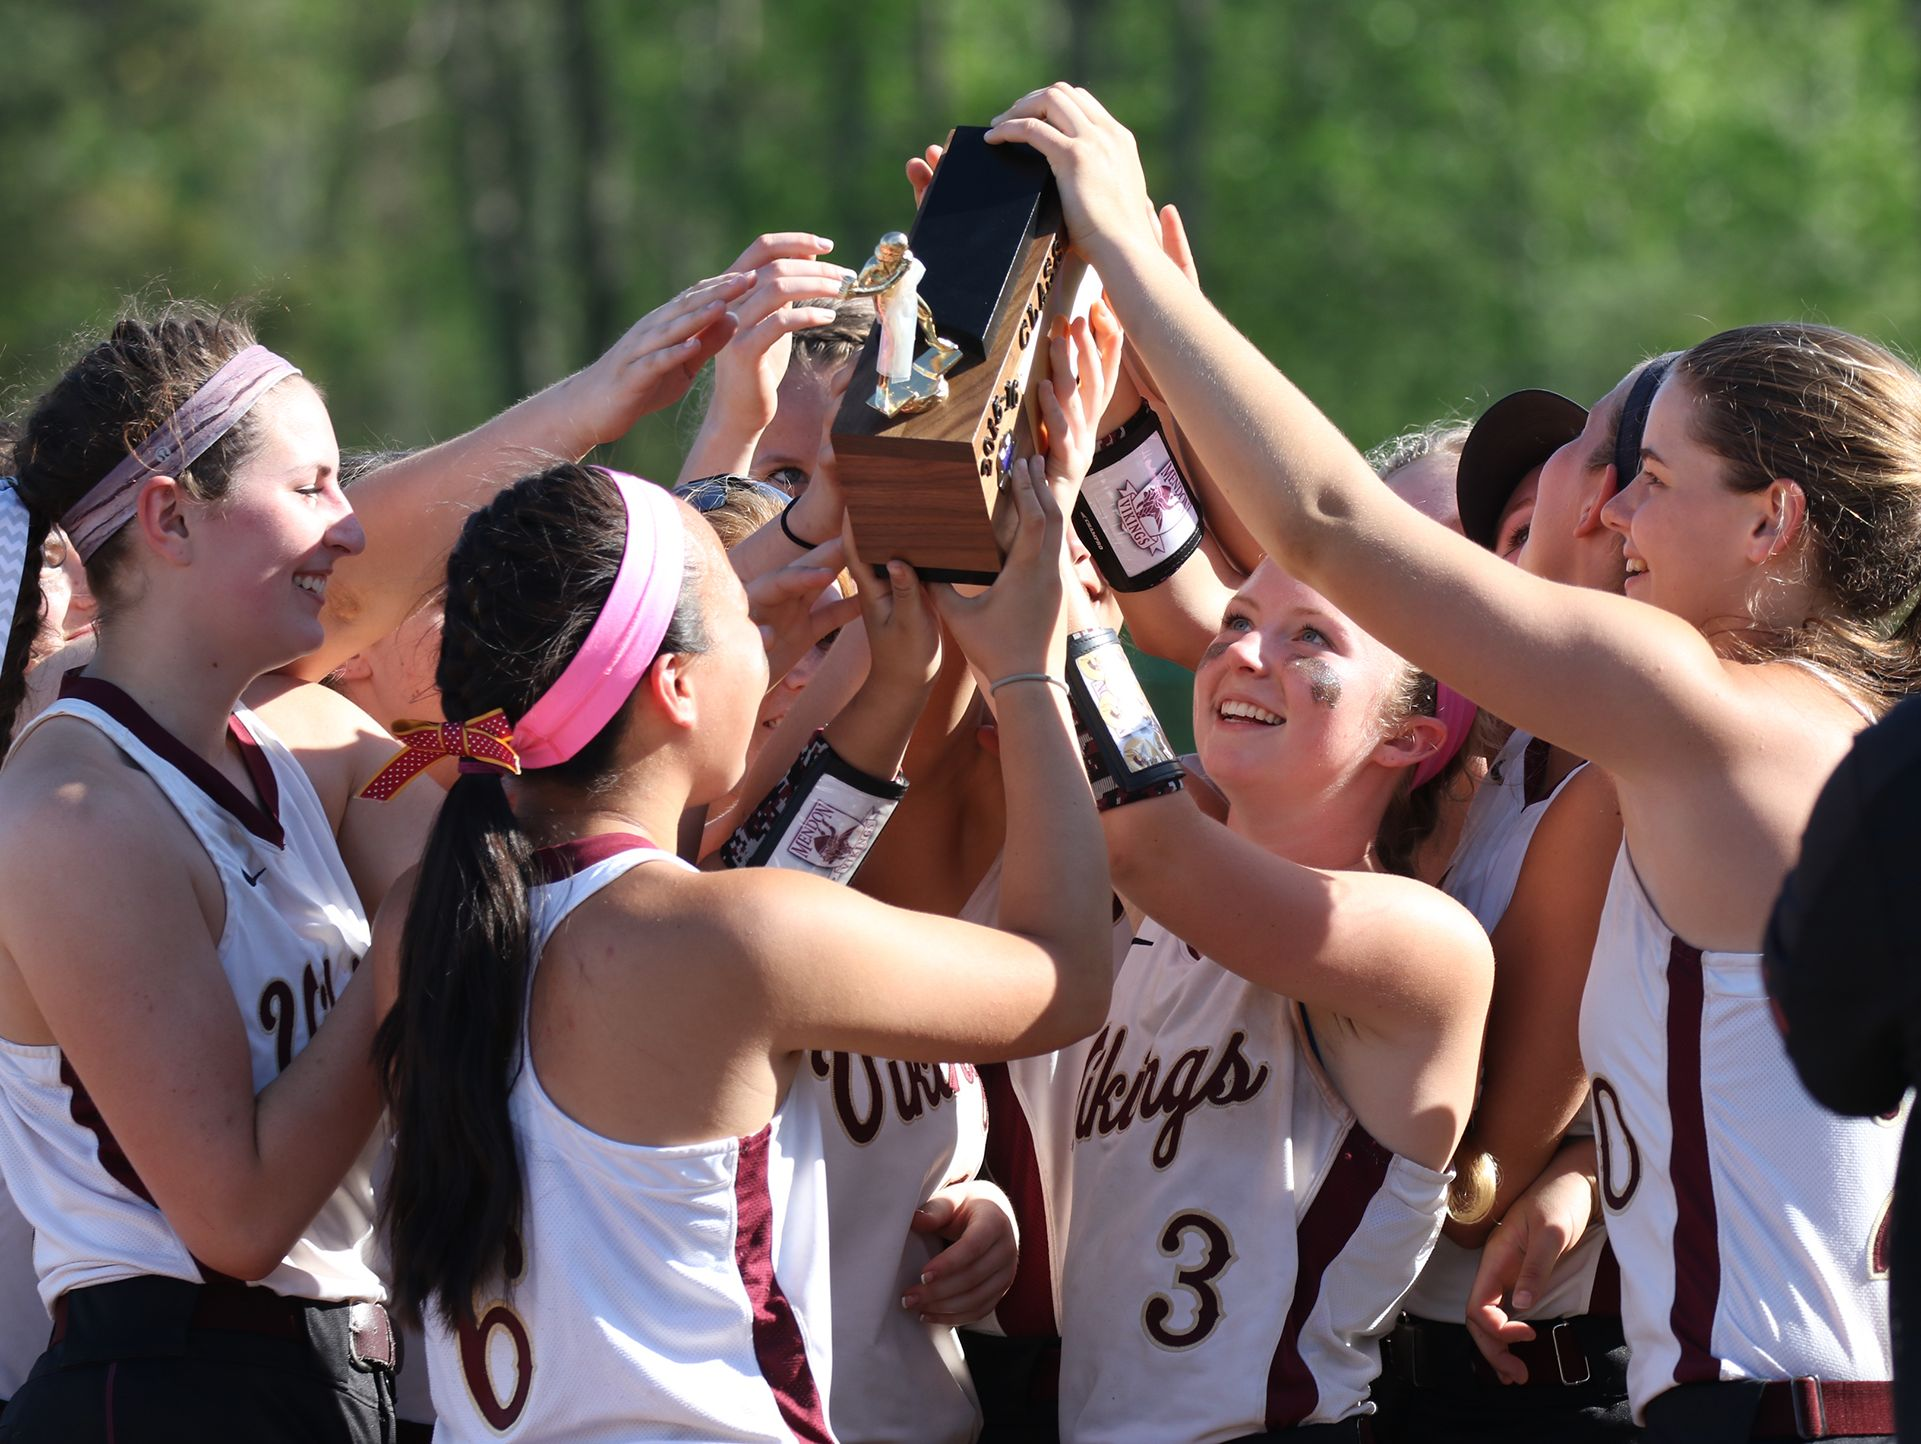 The Pittsford Mendon team holds its trophy to celebrate the Class A championship at The College at Brockport on May 27, 2016.